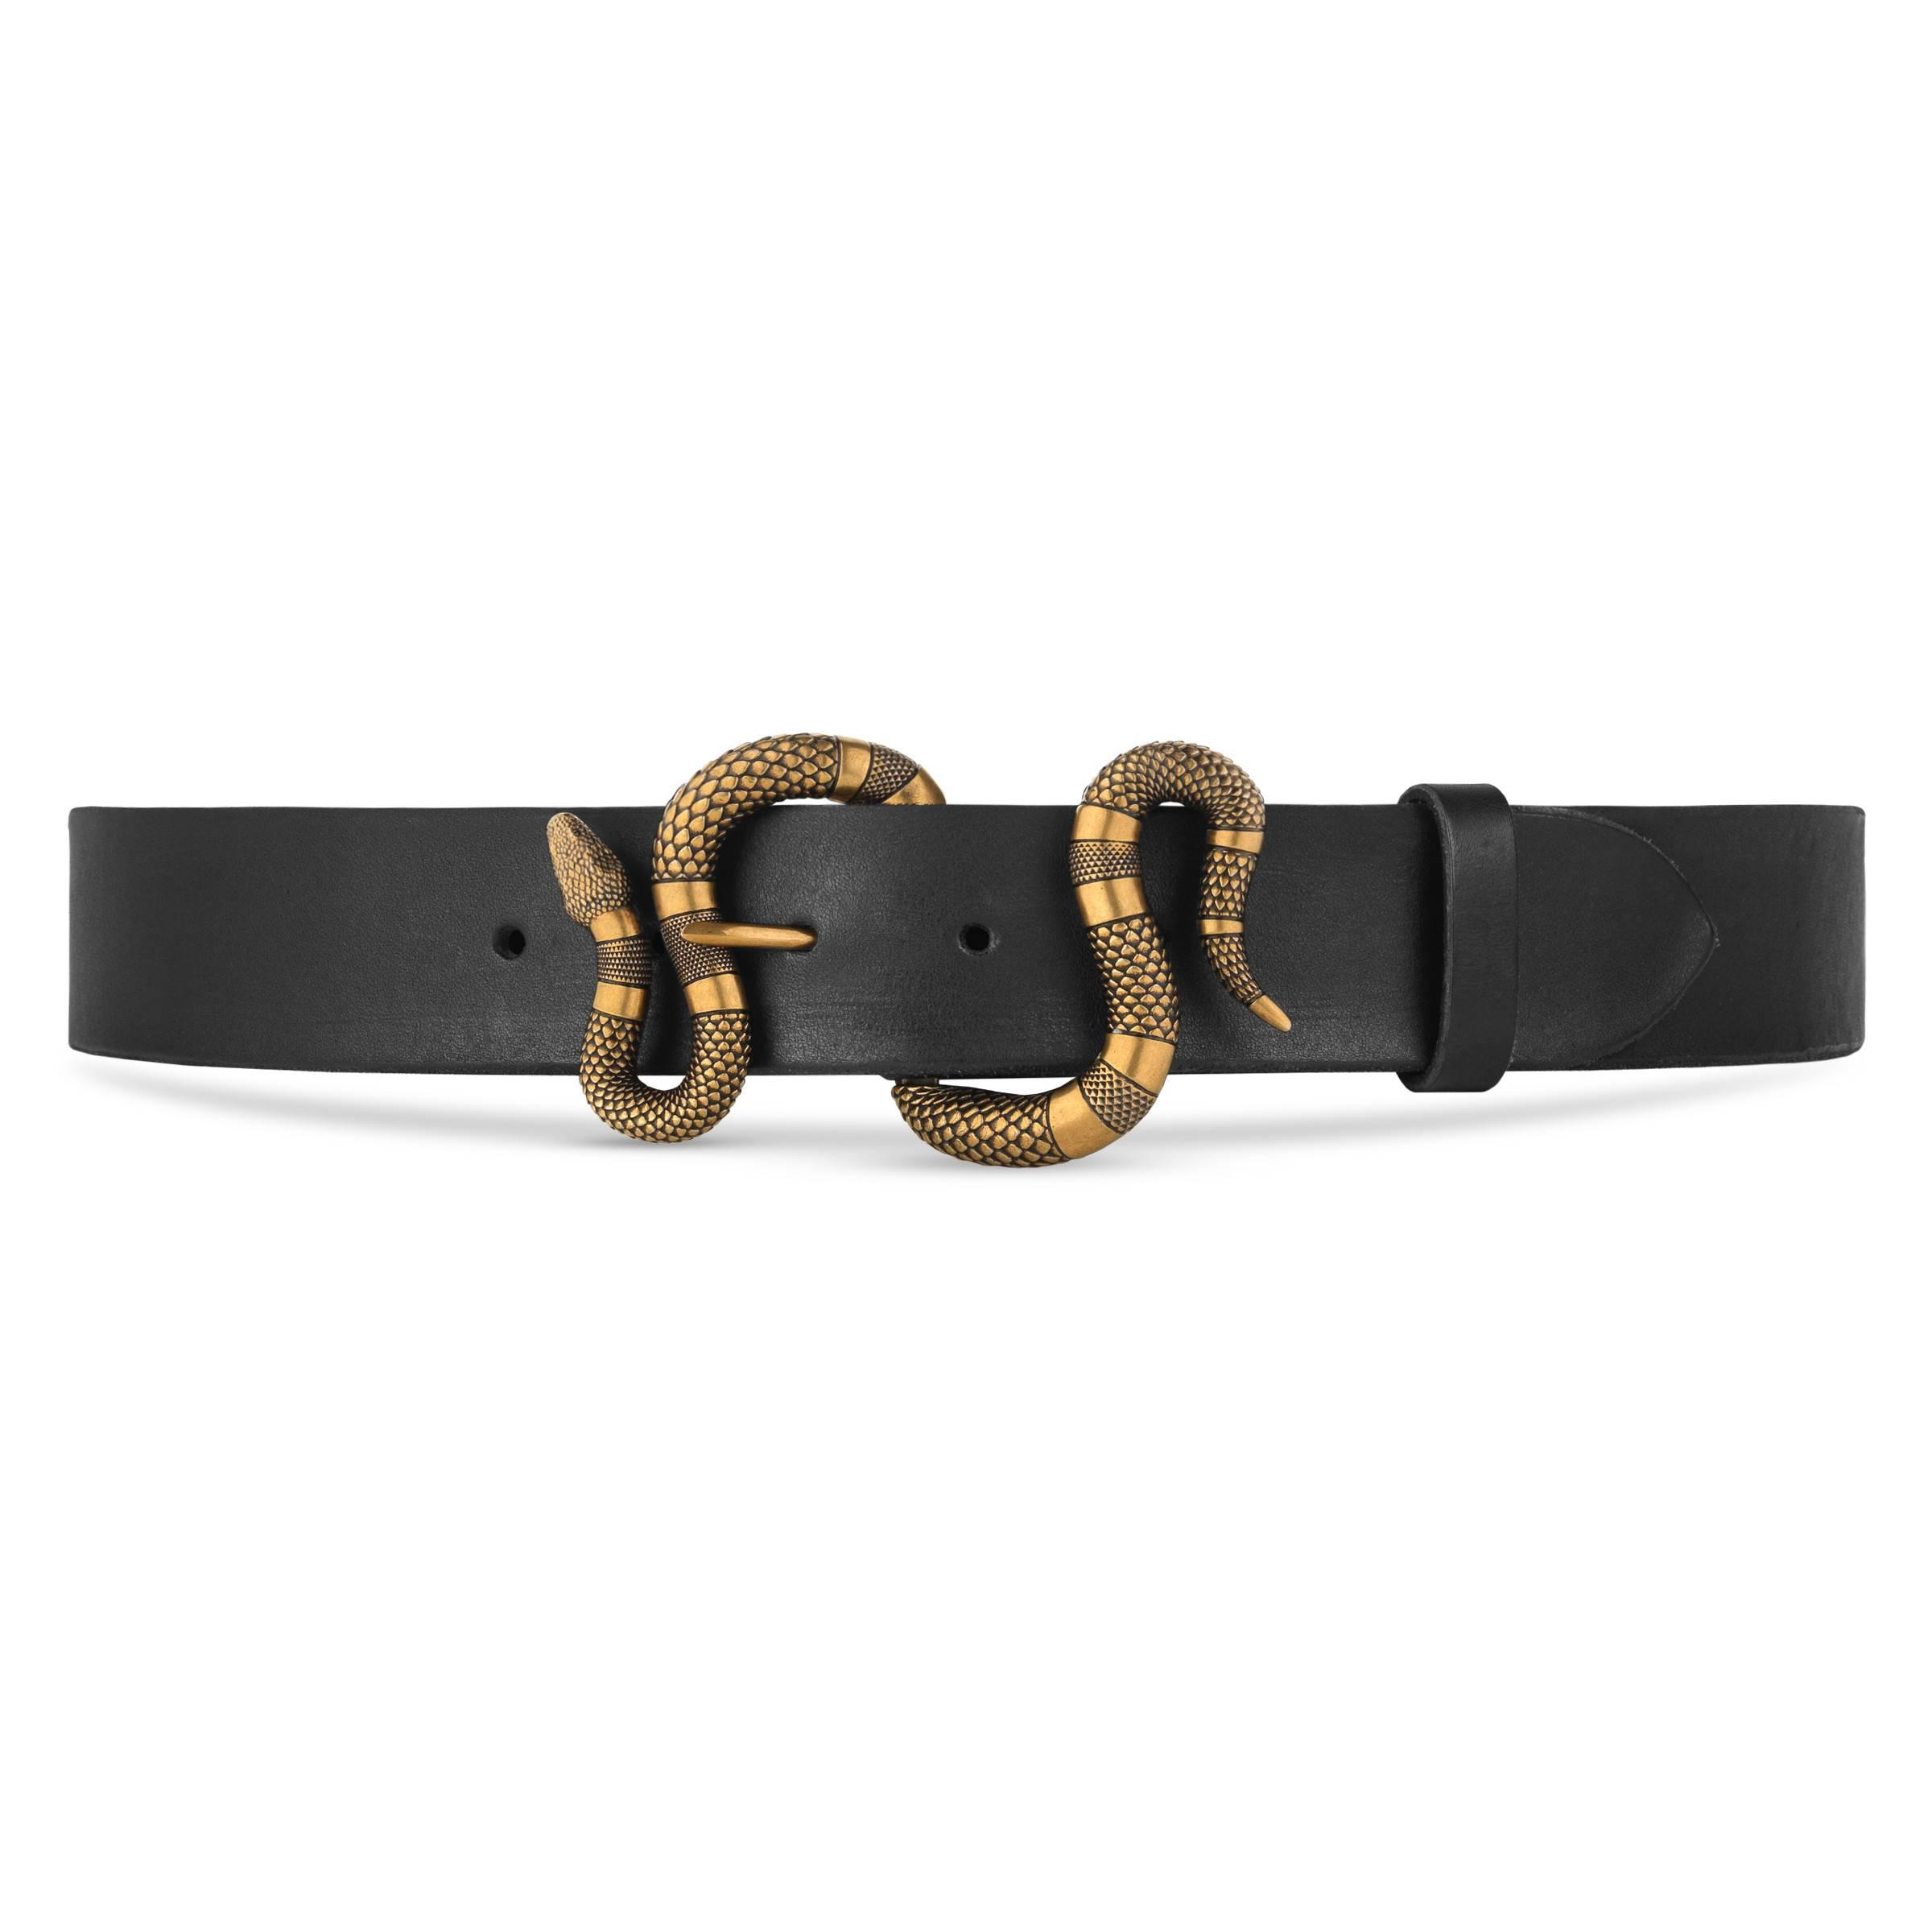 6d669ea794f Gucci Leather Belt With Snake Buckle in Black for Men - Lyst